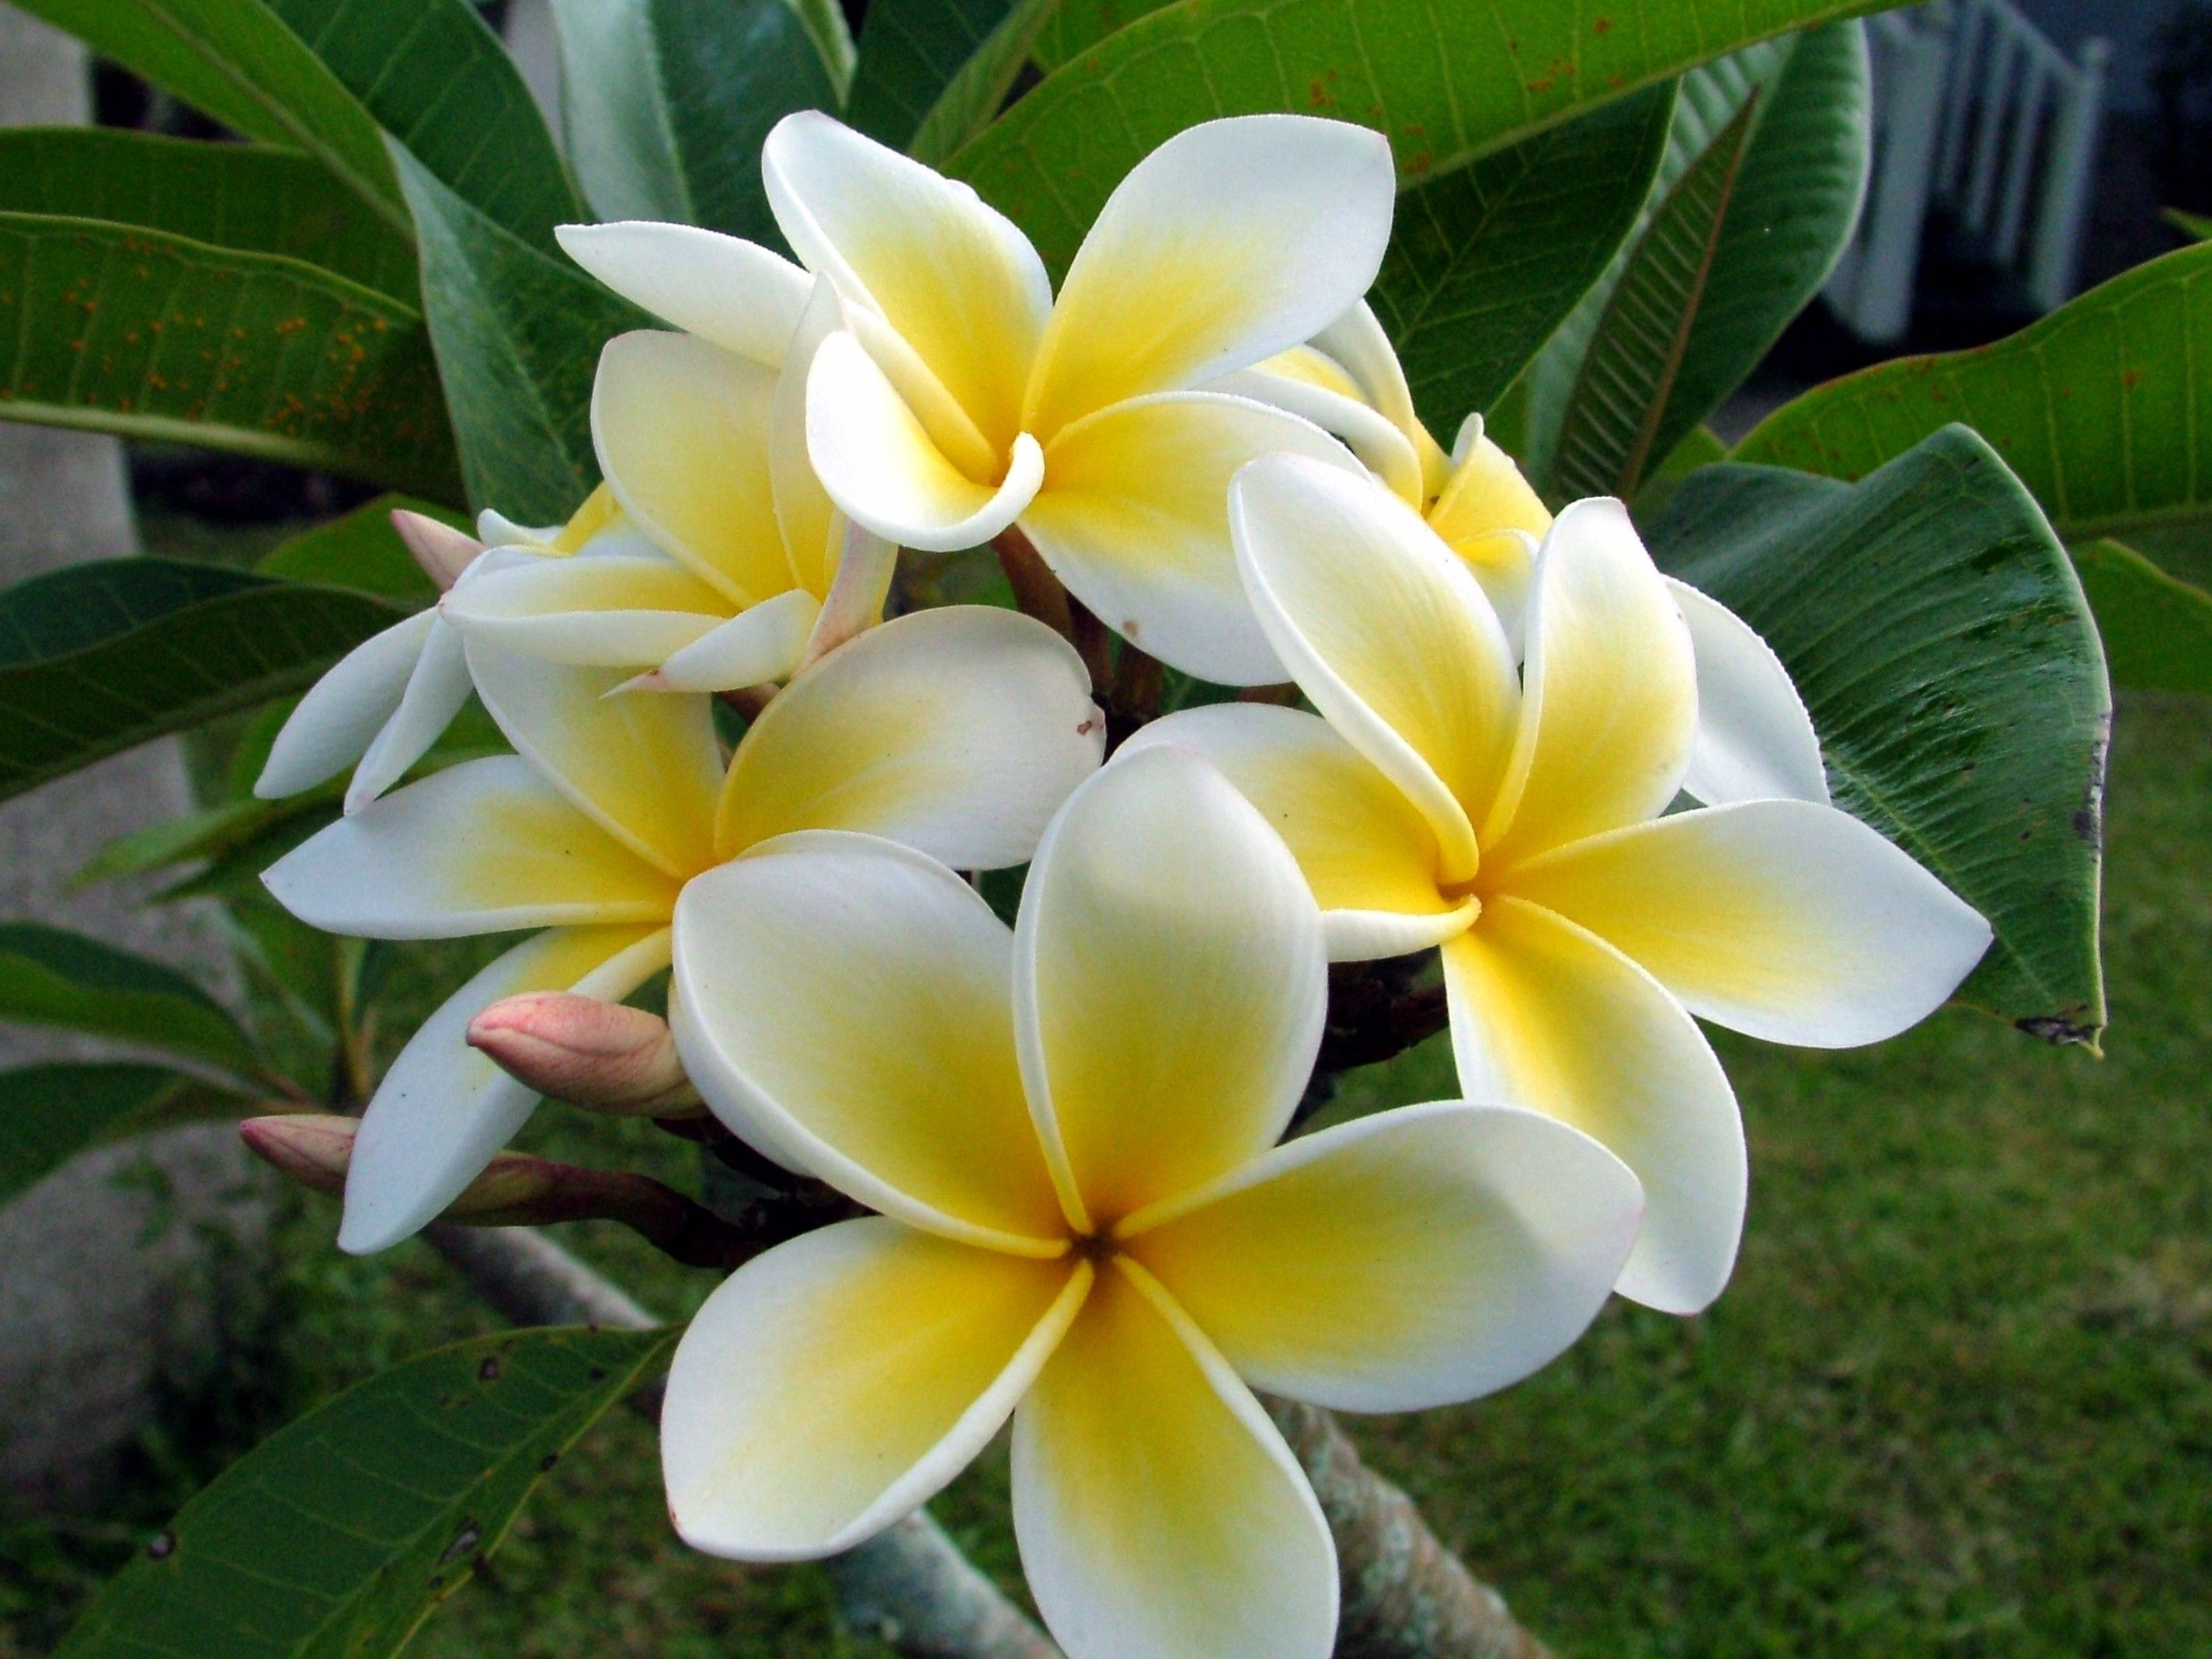 Hawaiian flower plumeria new guinea plumeria tree tropical hawaiian flower plumeria new guinea plumeria tree tropical white frangipani flowers wallpaper izmirmasajfo